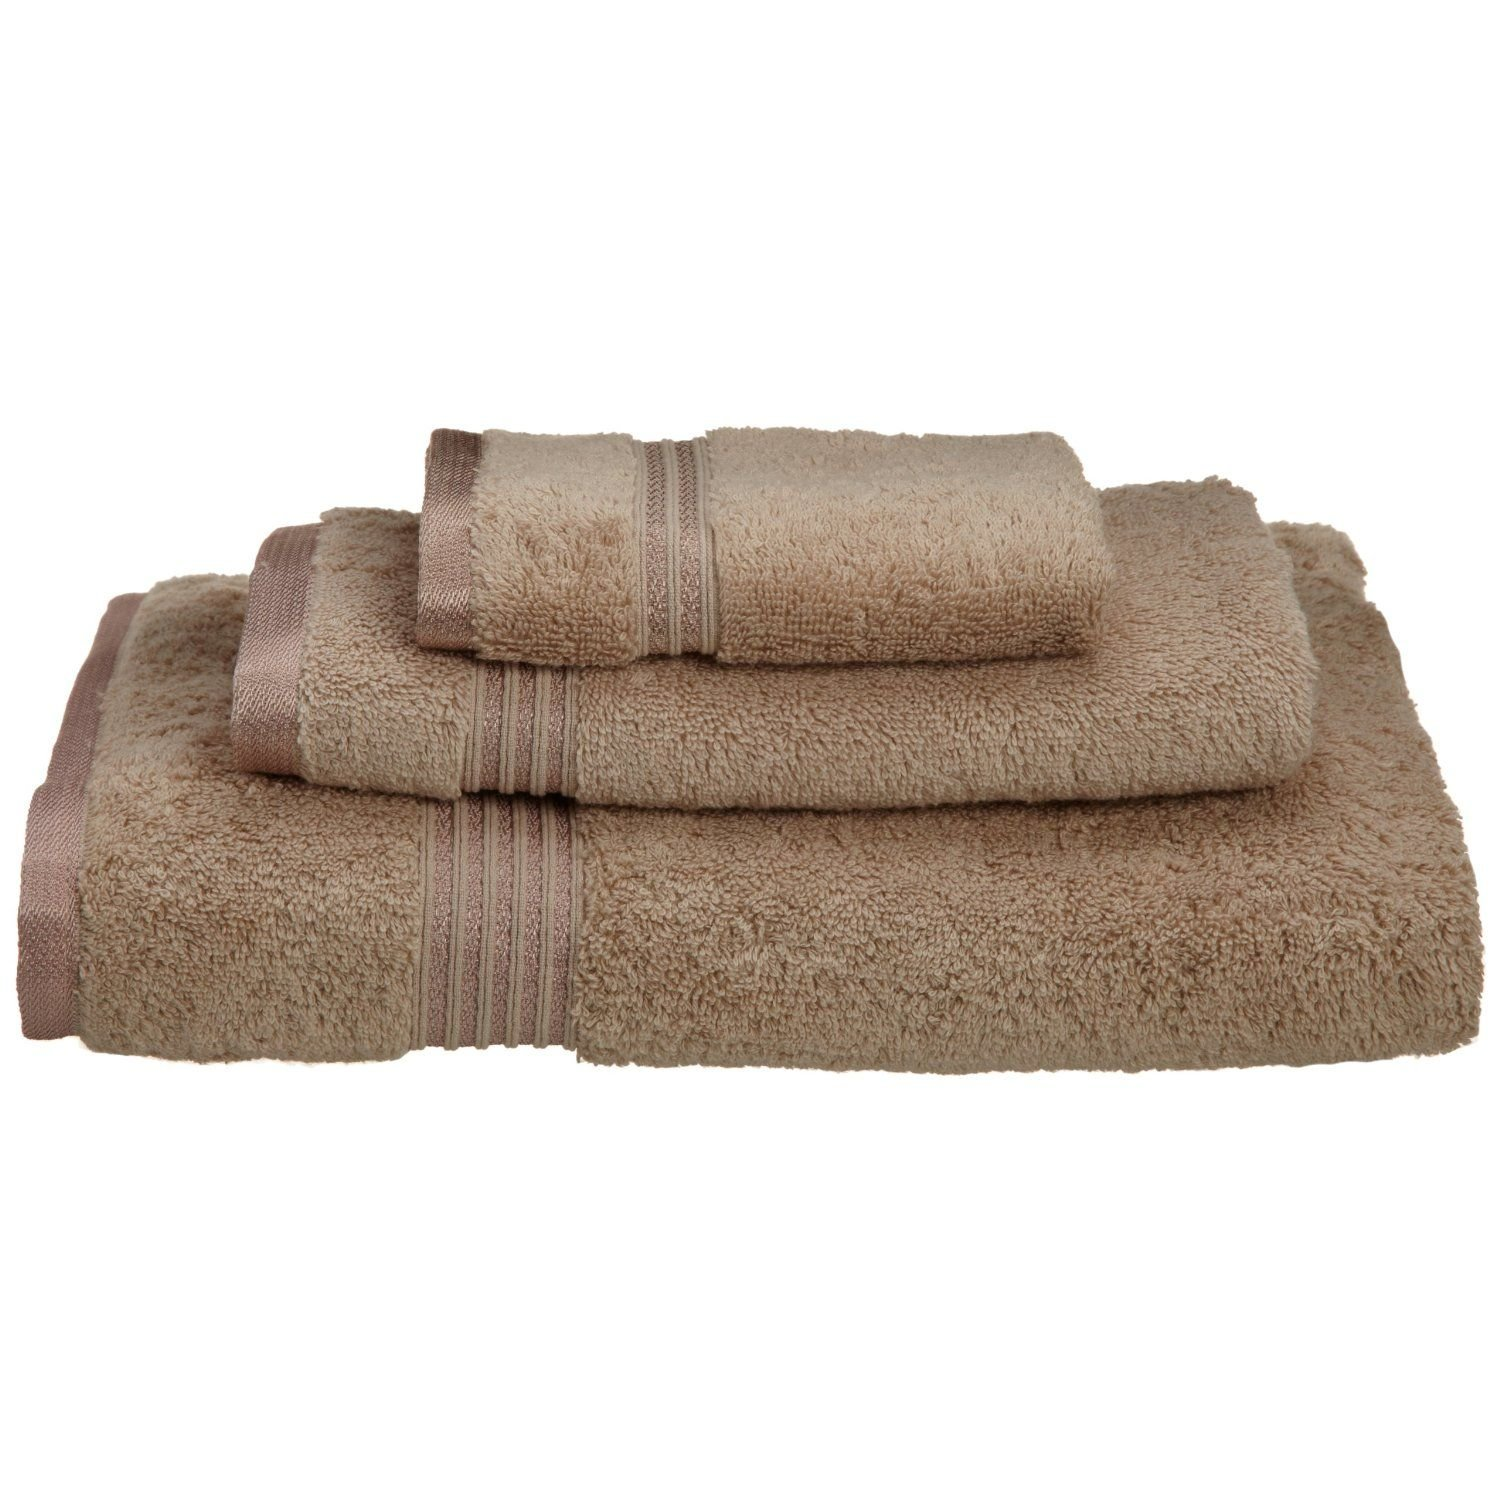 Superior Luxurious Soft Hotel & Spa Quality 3-Piece Towel Set, Made of 100% Premium Long-Staple Combed Cotton - Washcloth, Hand Towel, and Bath Towel, Taupe